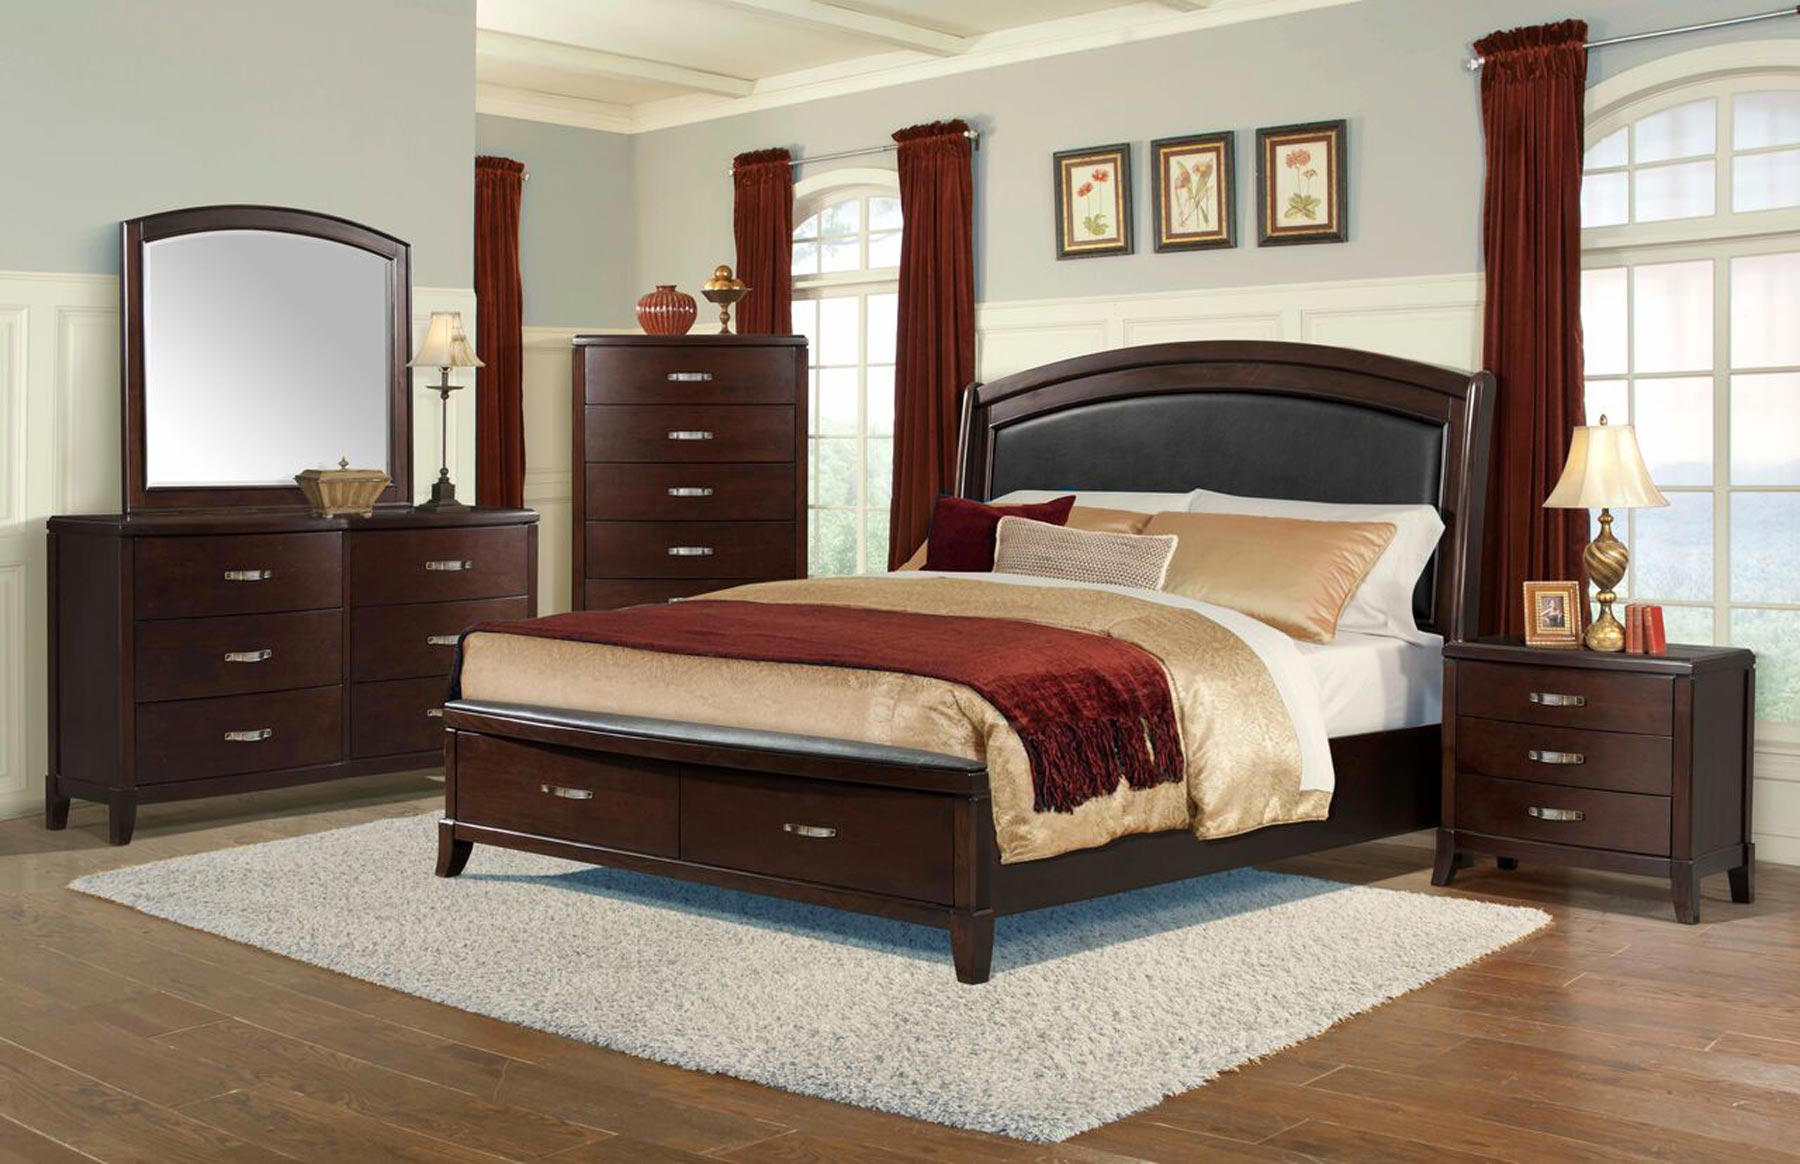 Delaney 6 Piece Bedroom Set | Gonzalez Furniture